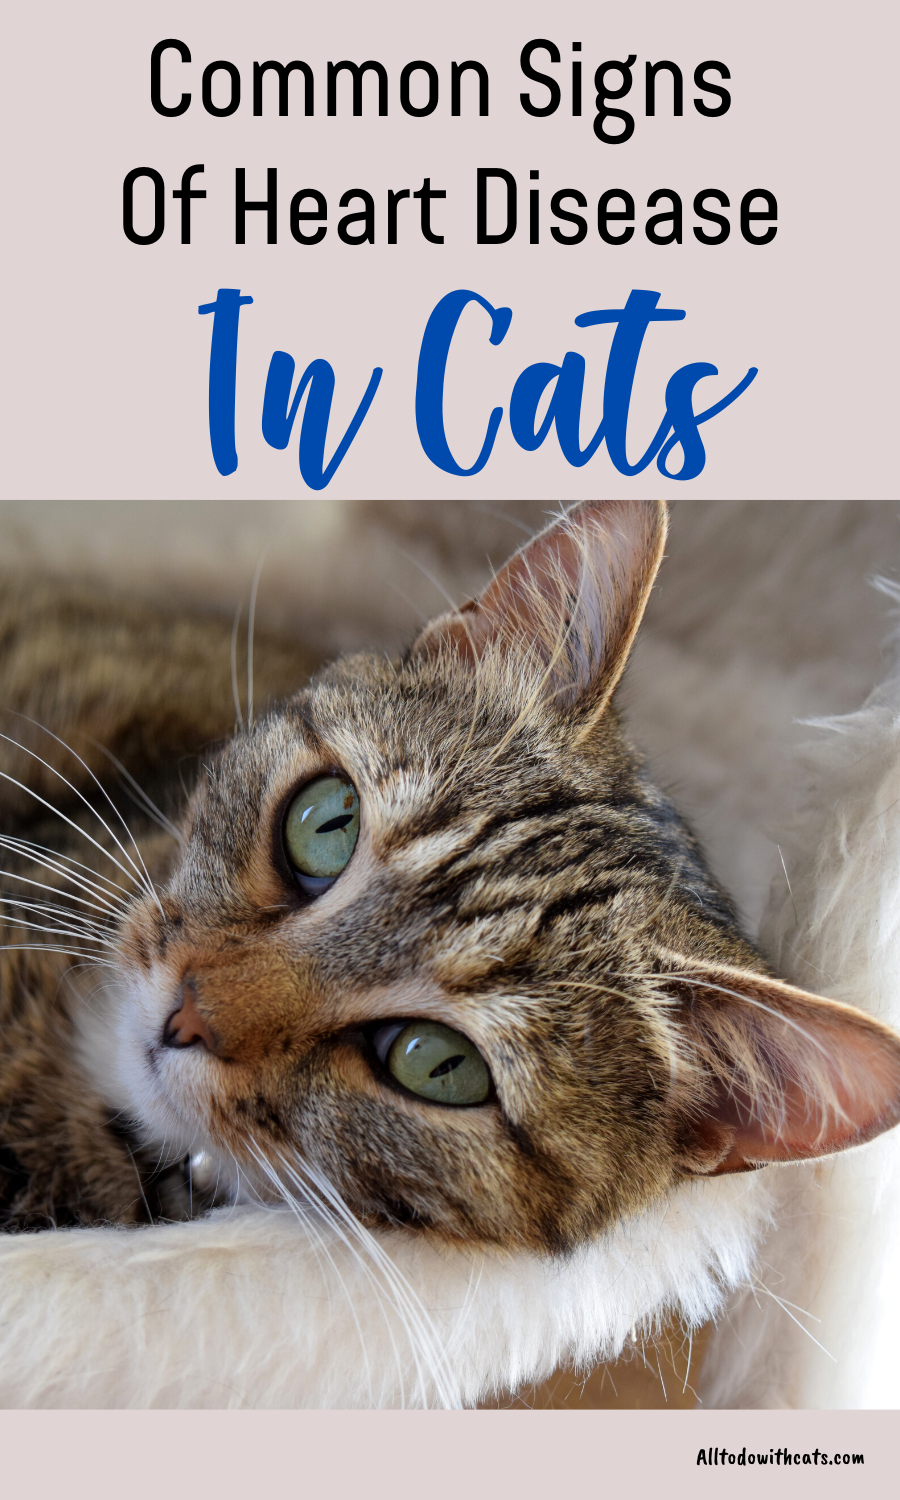 What Are The Symptoms Of Heart Disease In Cats In 2020 Heart Disease Cat Diseases Heart Disease Symptoms